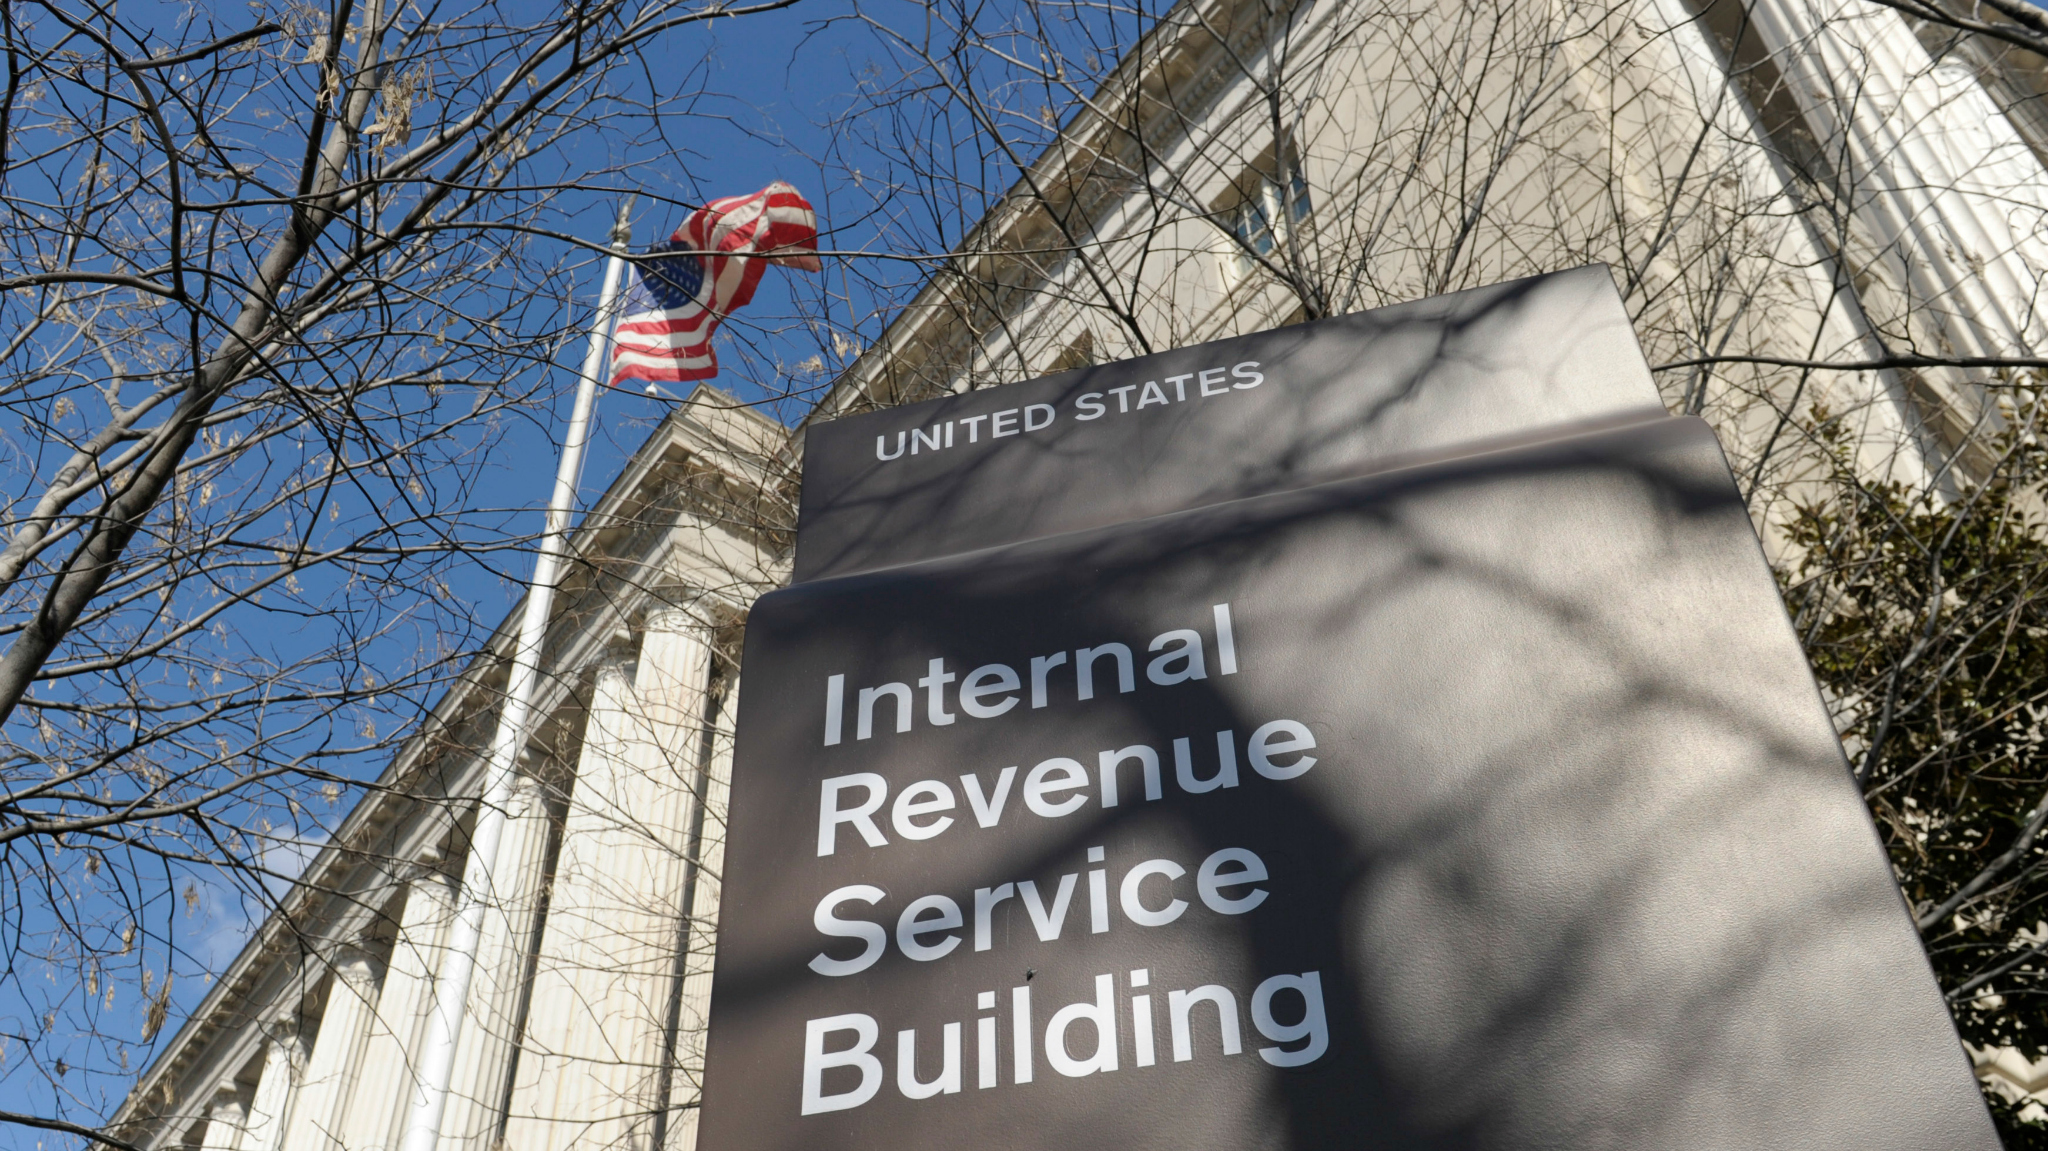 IRS Extends Filing Deadline by One Day Because of Web Issues